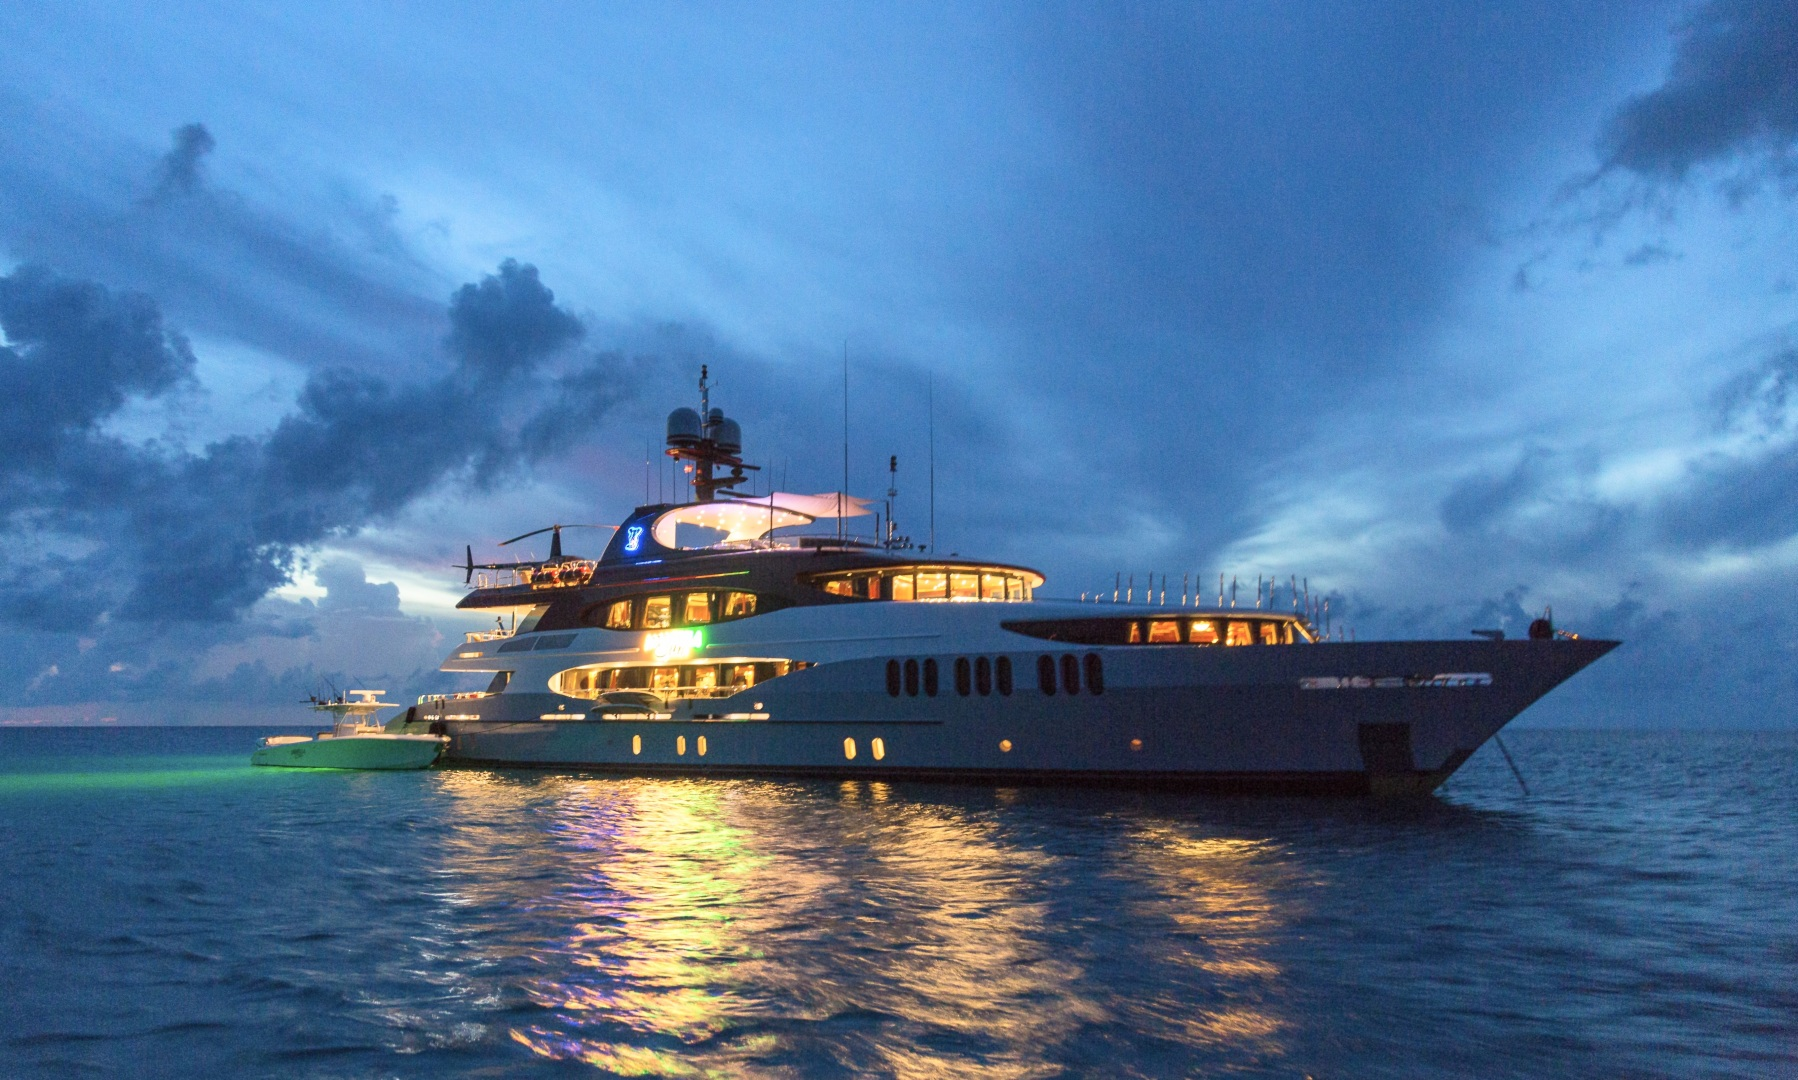 Trinity Yachts-164 Tri-deck Motor Yacht 2008-Amarula Sun Fort Lauderdale-Florida-United States-Starboard View At Dusk-1513955 | Thumbnail